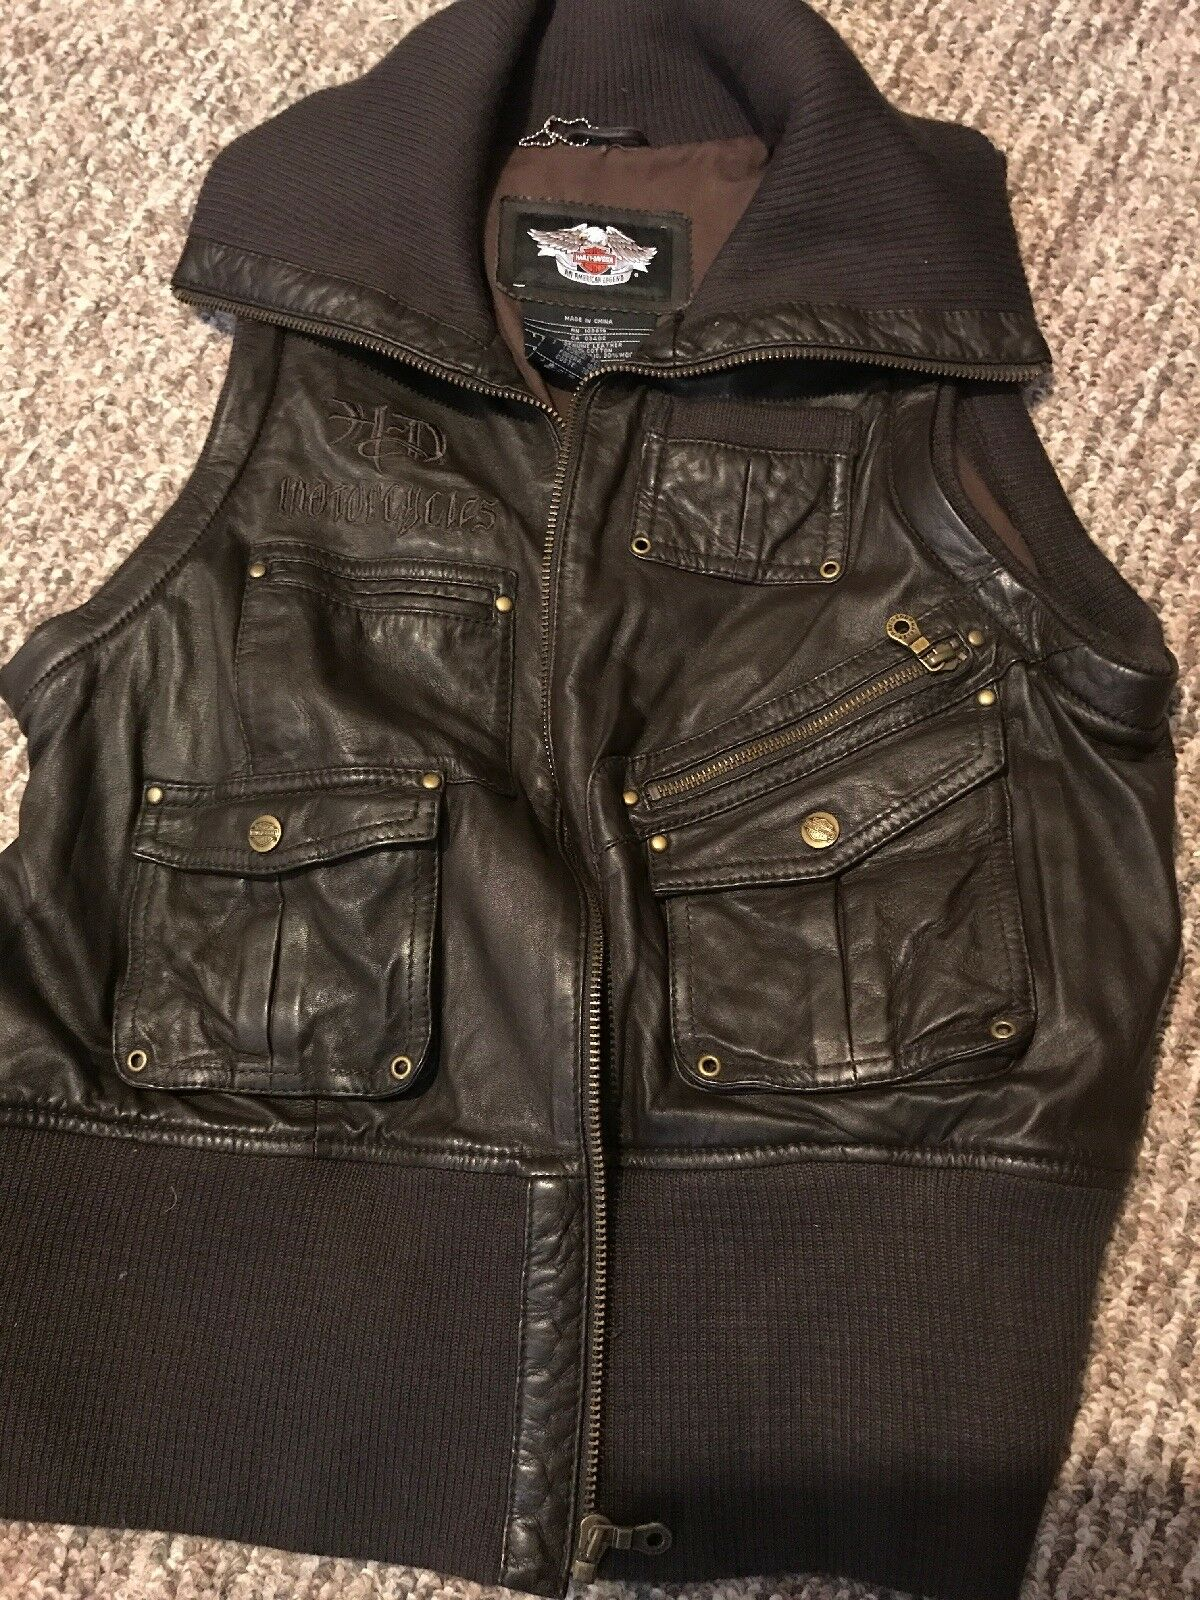 Womans Chocolate Leather Vest Harley Davidson